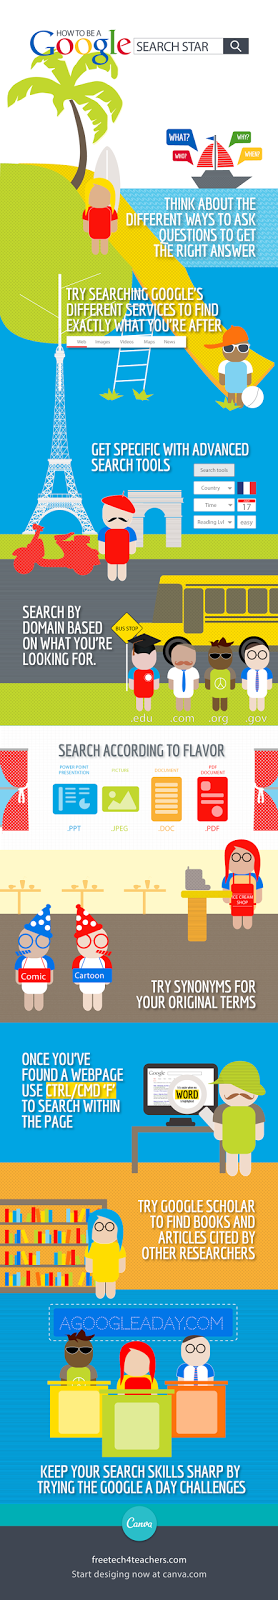 Great Google Search Strategies Every Student Can Use - Infographic